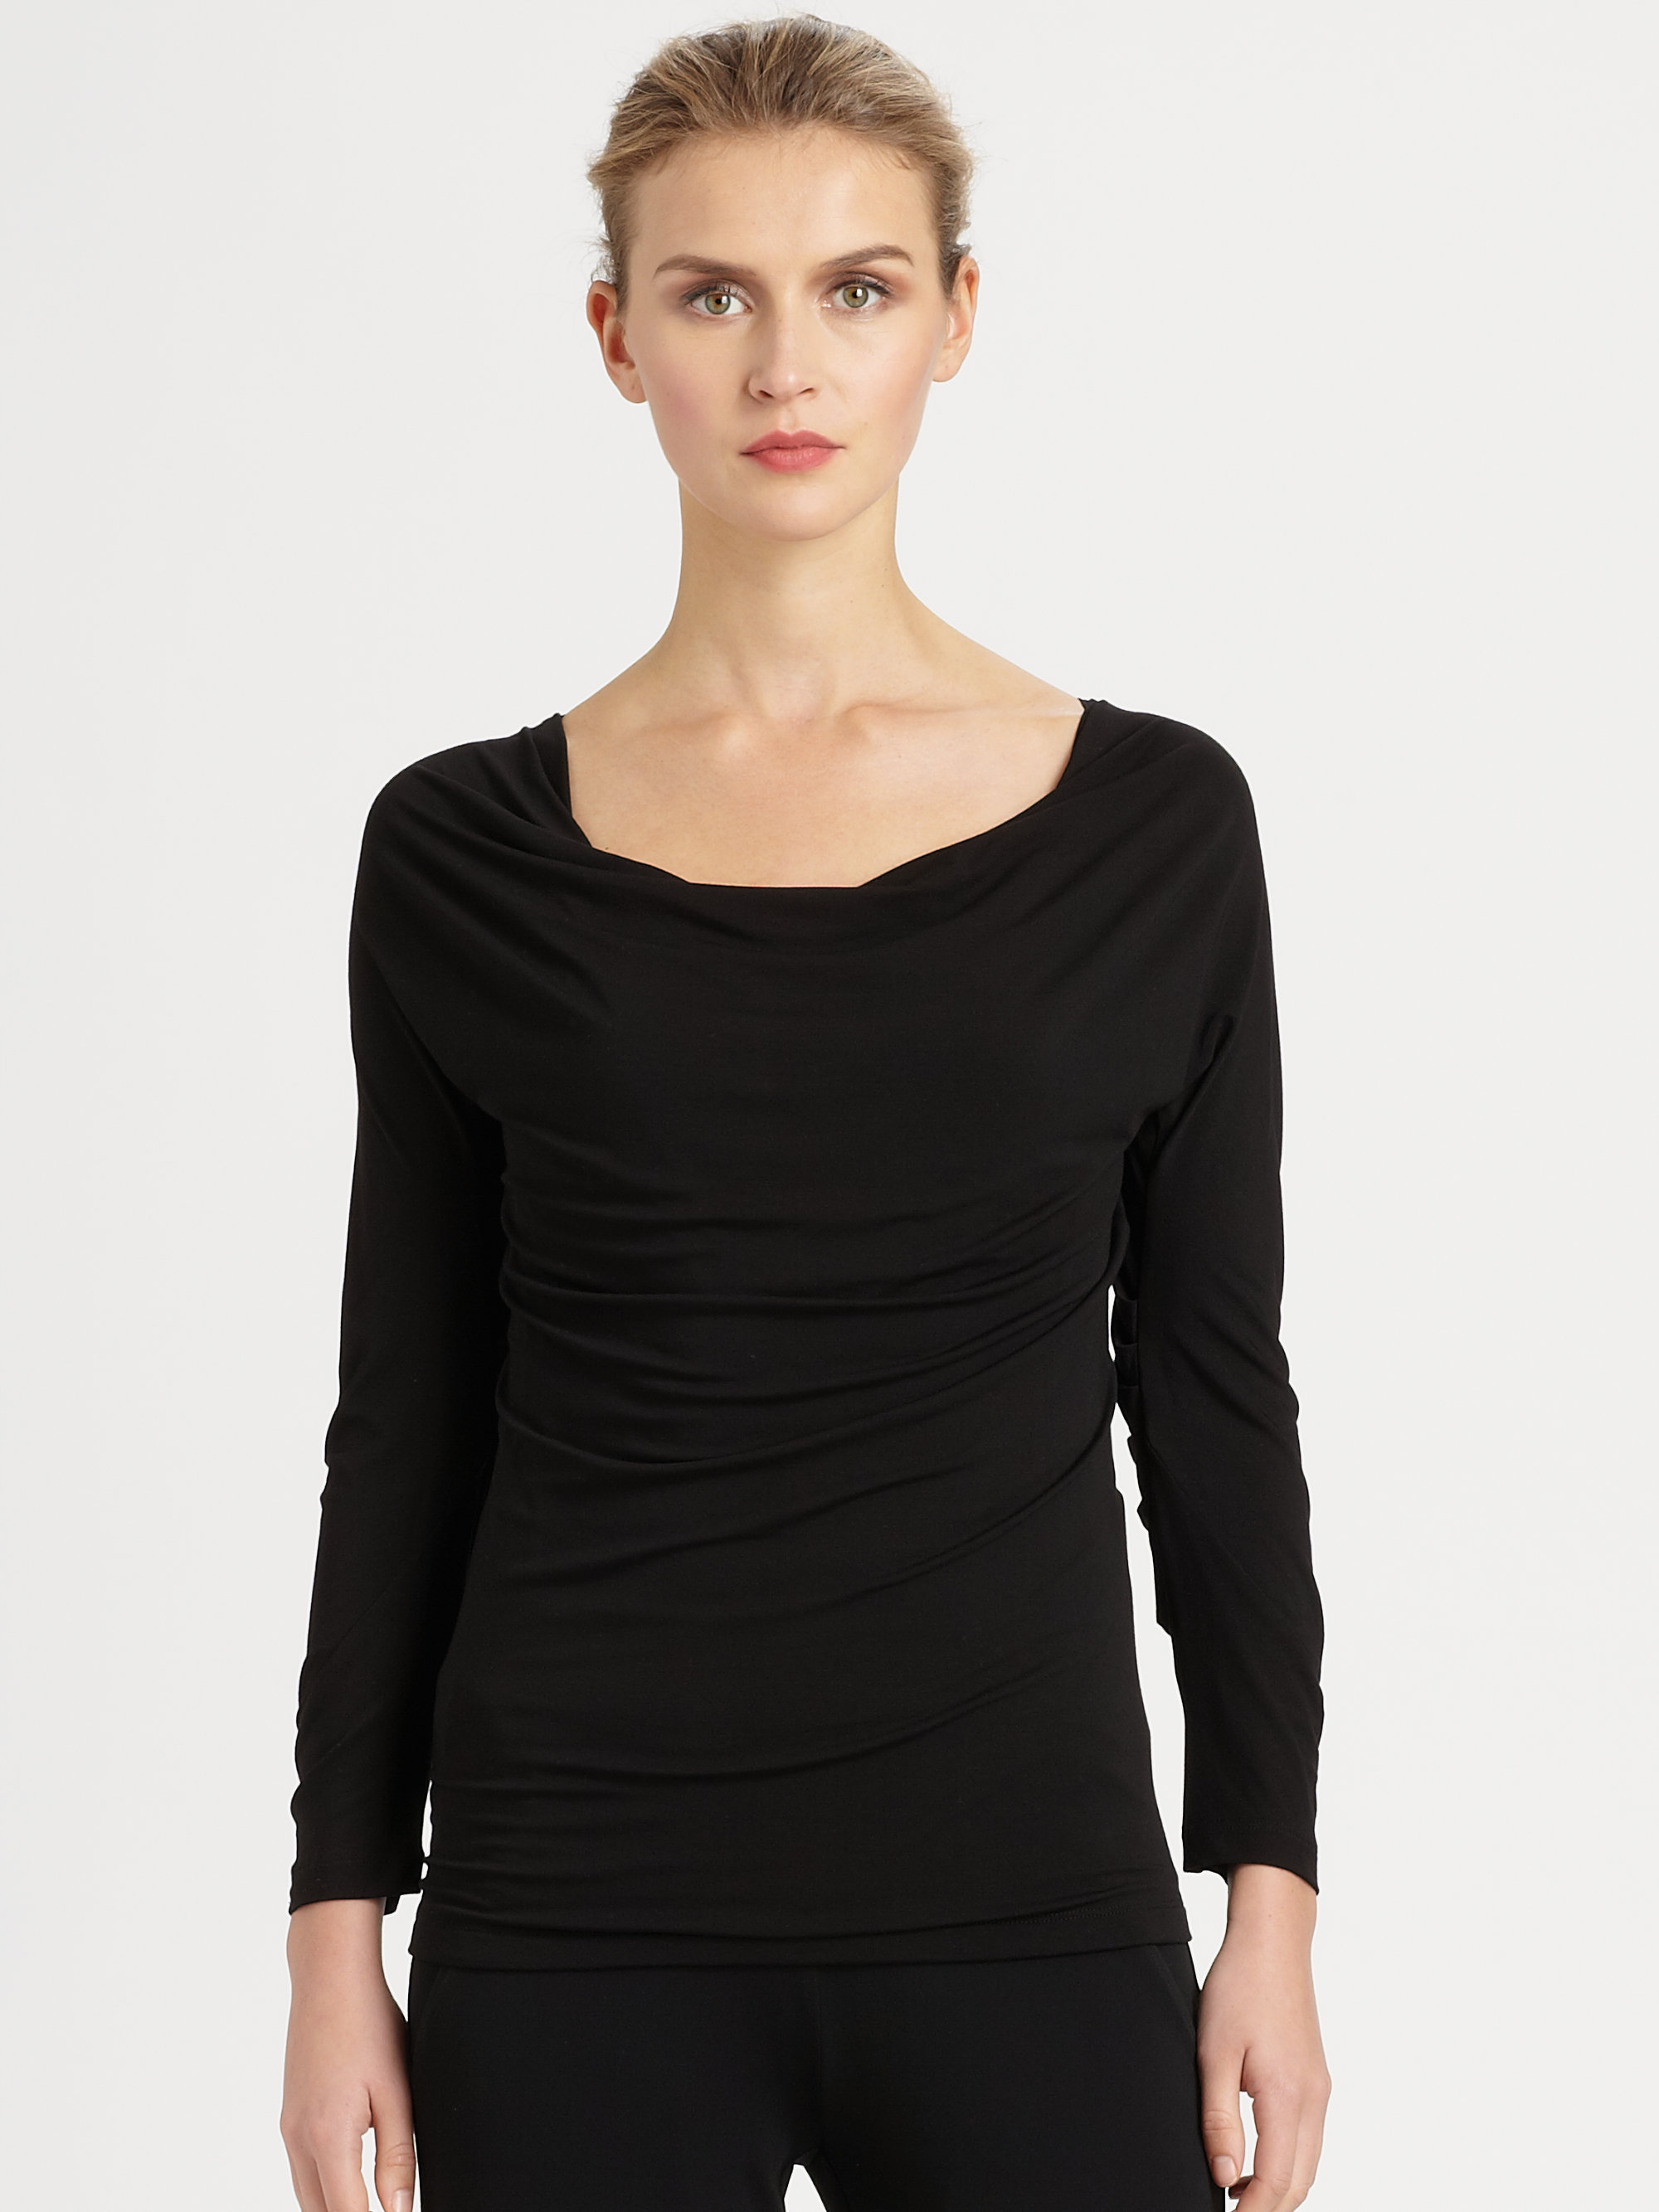 Donna karan new york draped stretch jersey top in pink for Donna karen new york